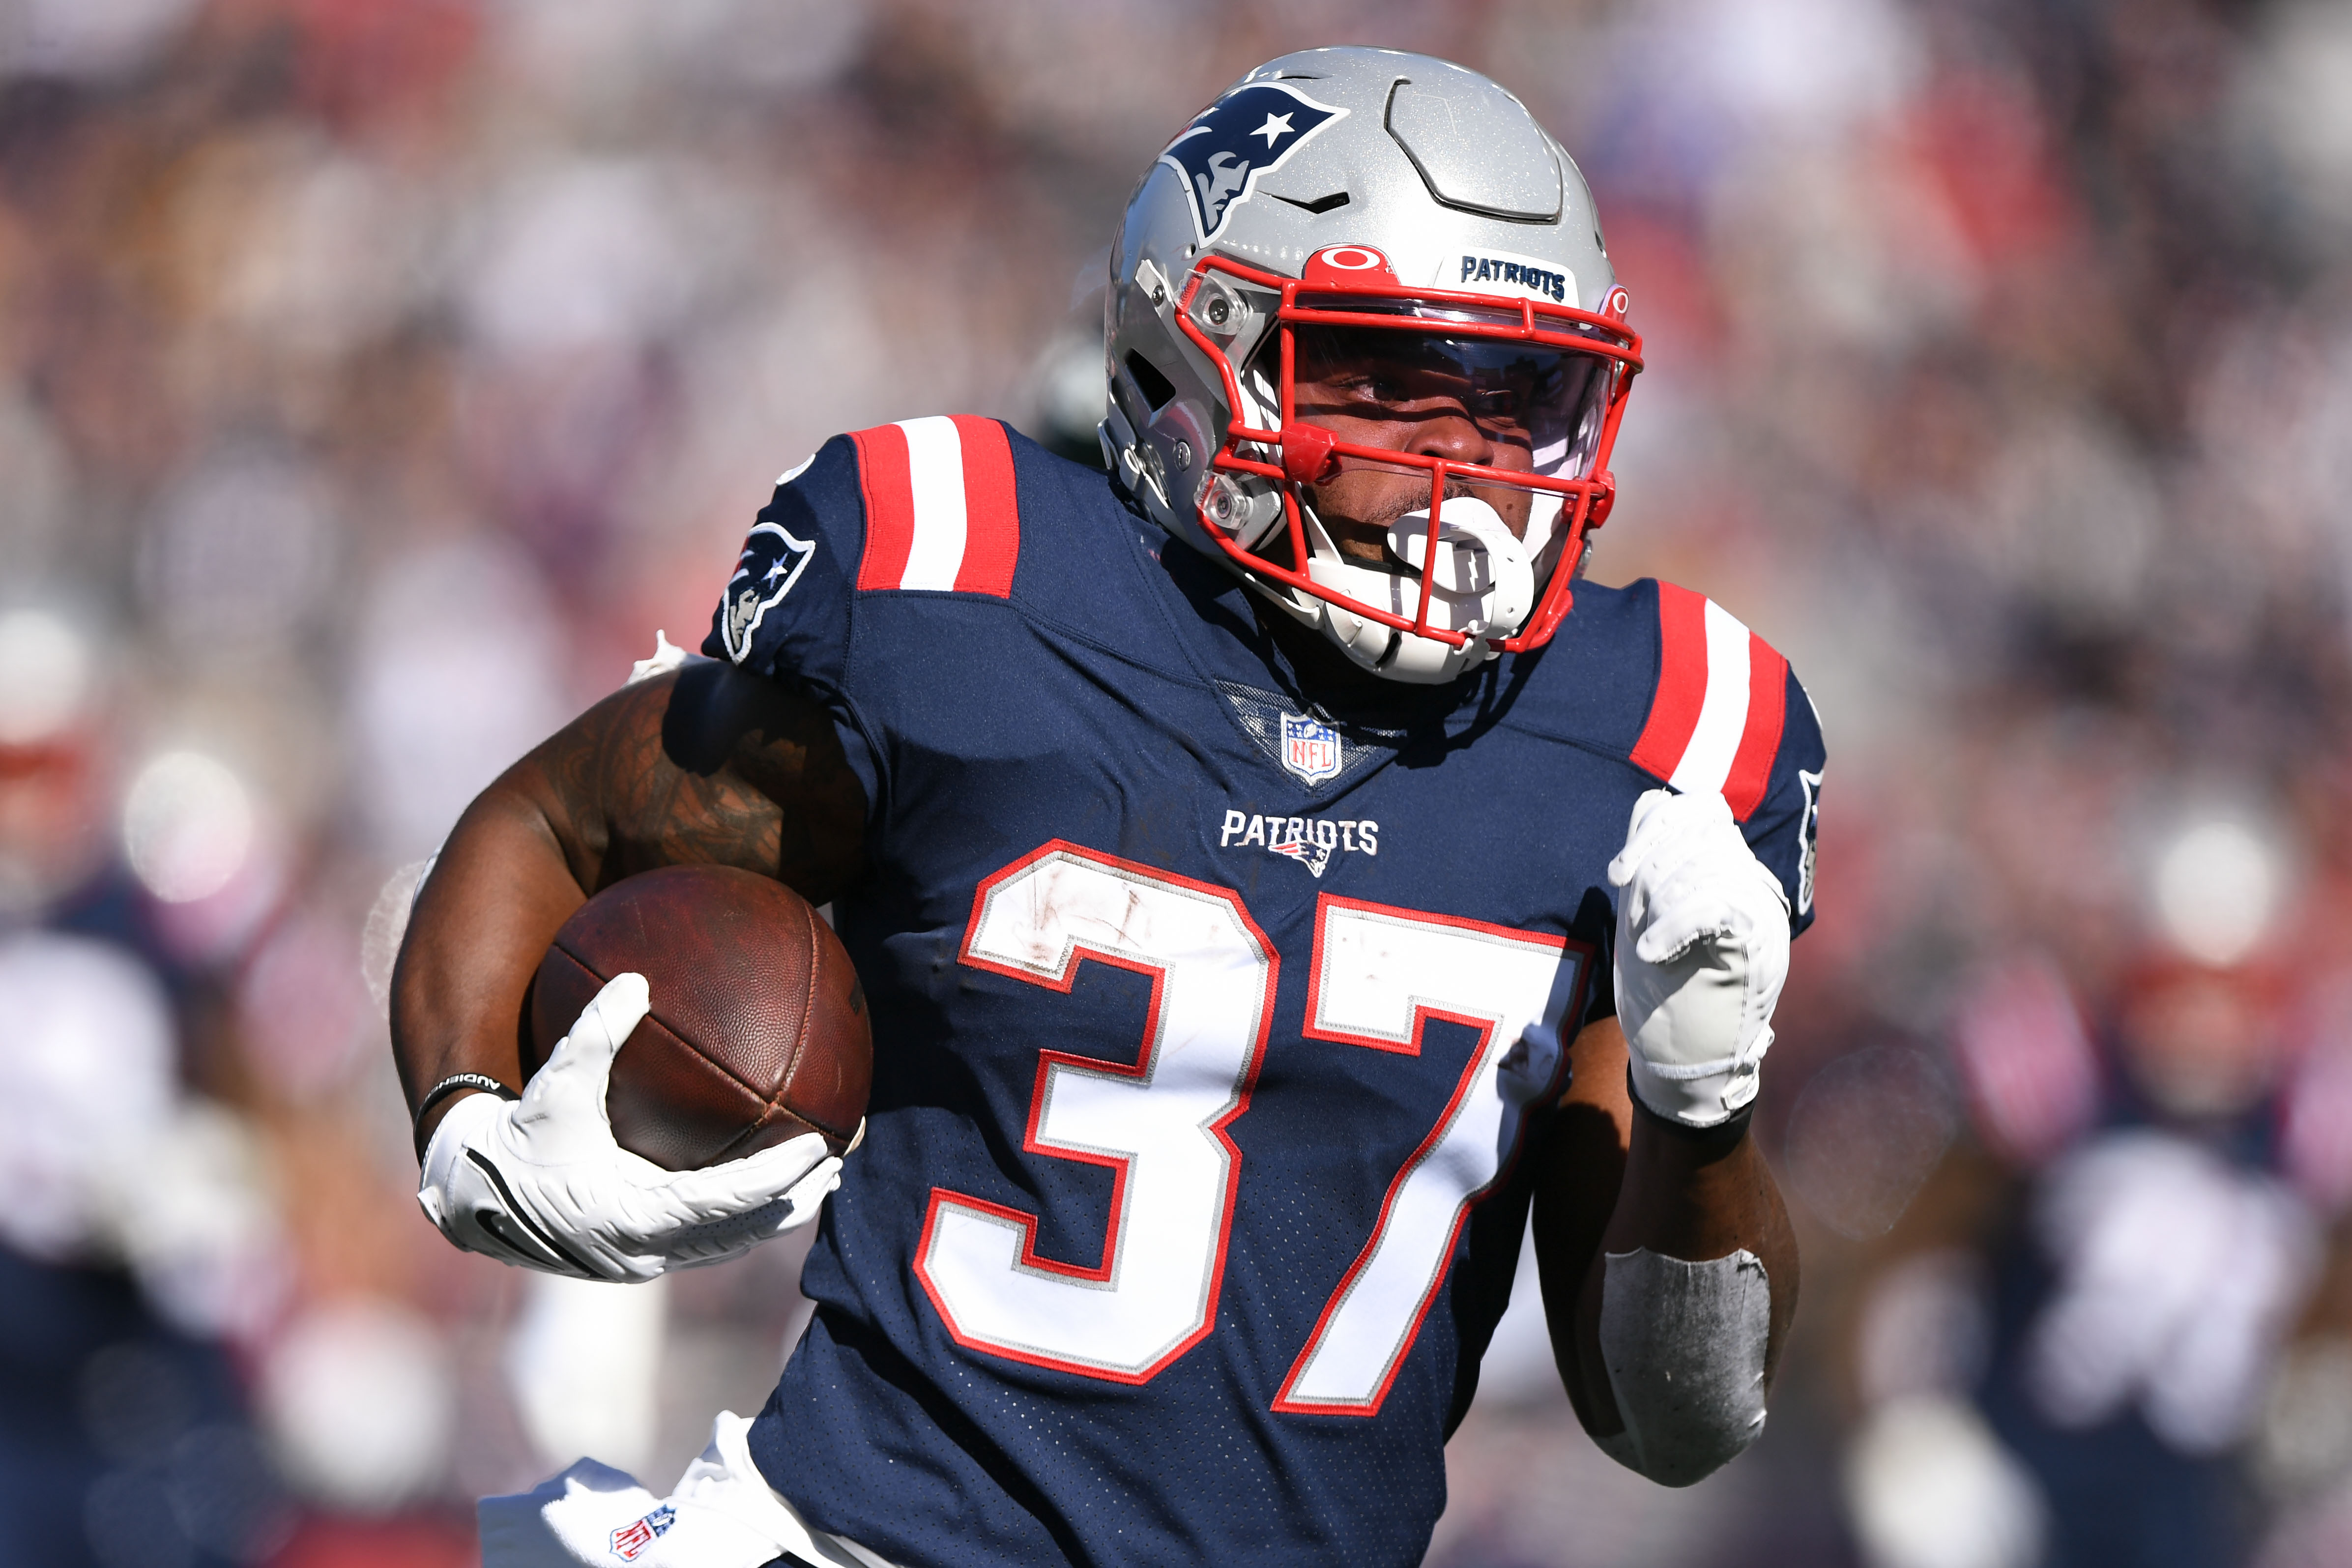 New England Patriots running back Damien Harris (37) runs with the ball during the first half against the New York Jets at Gillette Stadium.